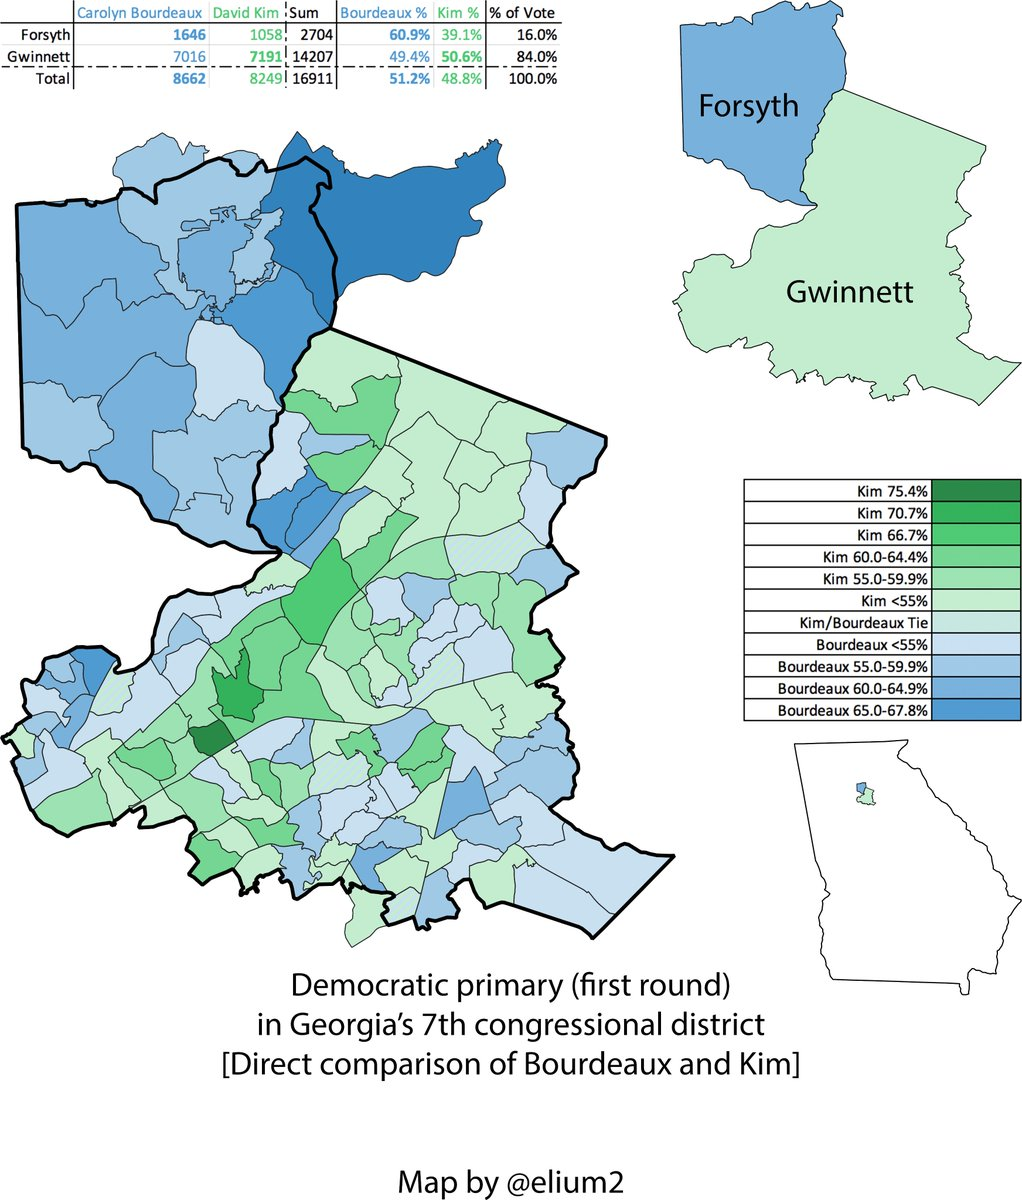 Map Of Georgia 7th Congressional District.Eli On Twitter Democrats In Georgia S 7th Congressional District